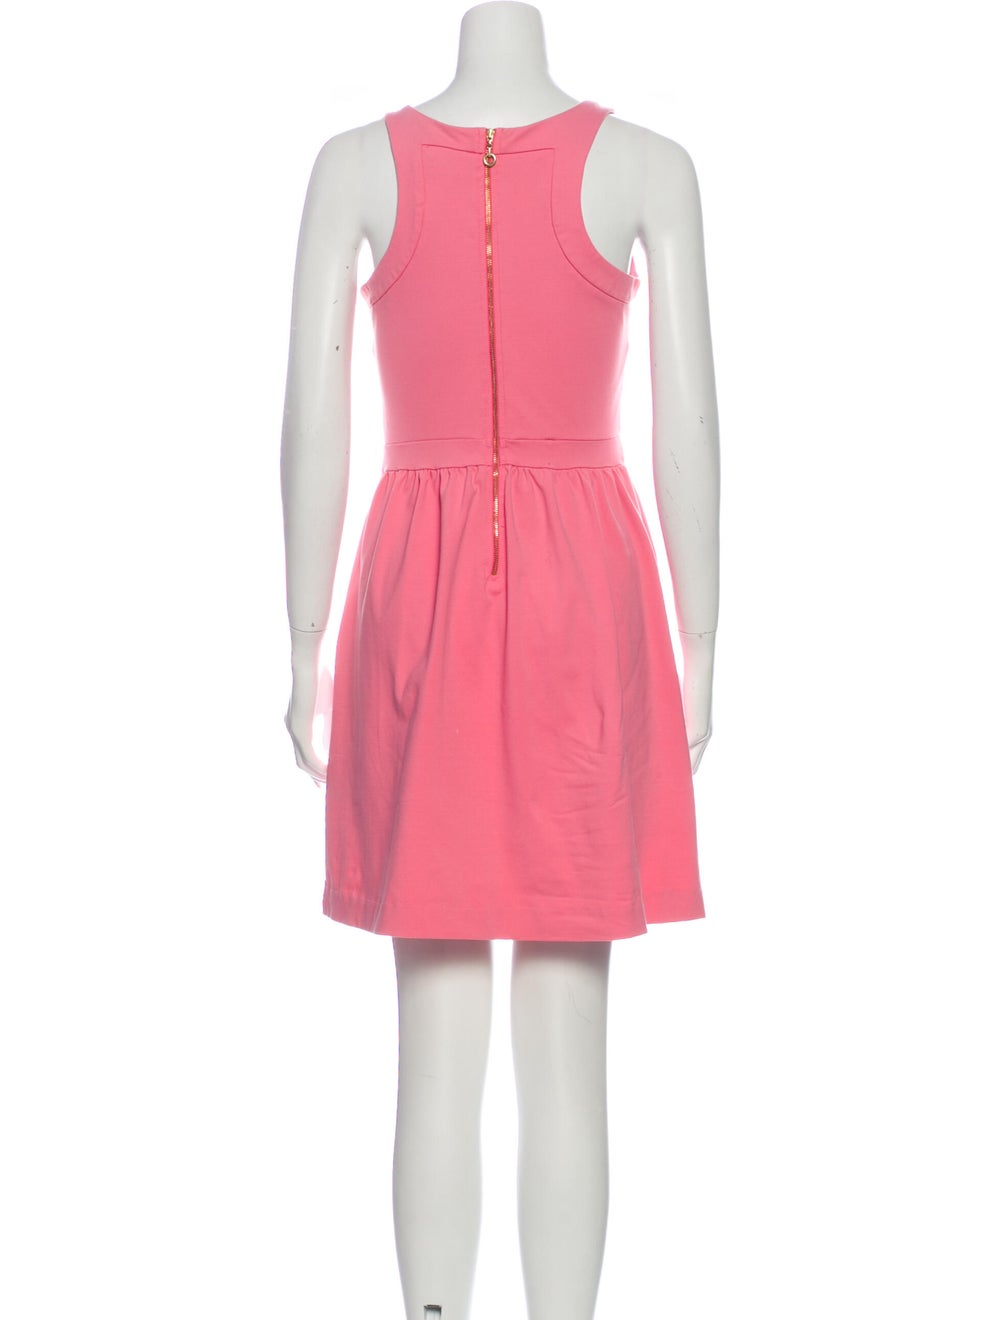 Cynthia Rowley Scoop Neck Mini Dress Pink - image 3